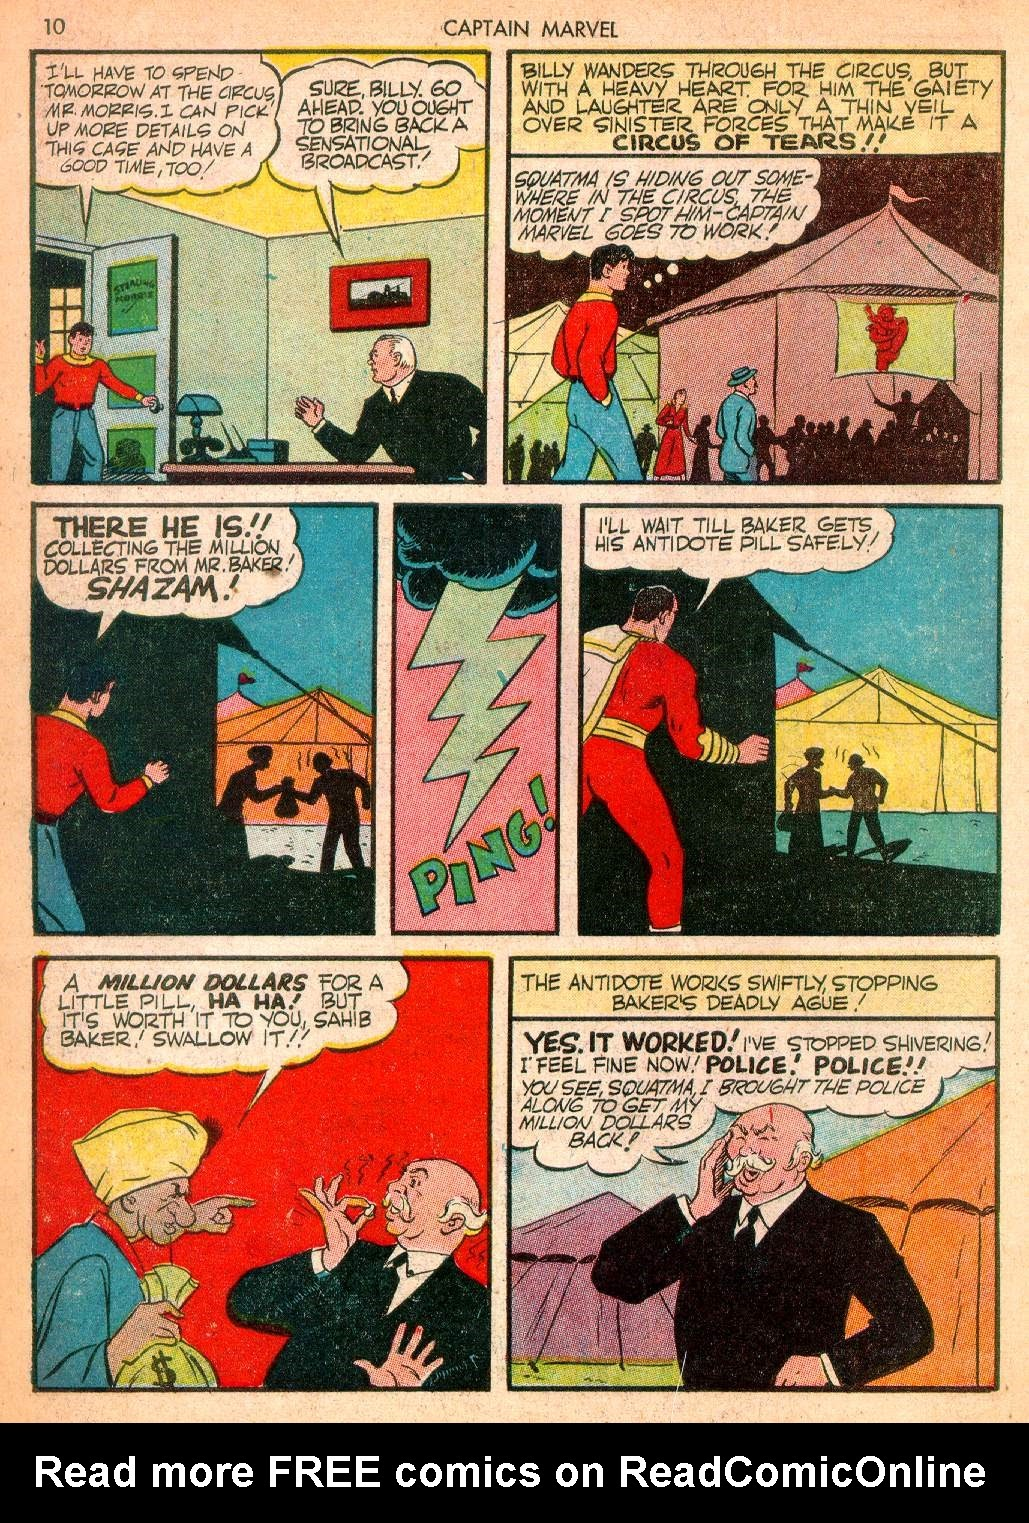 Captain Marvel Adventures issue 10 - Page 10